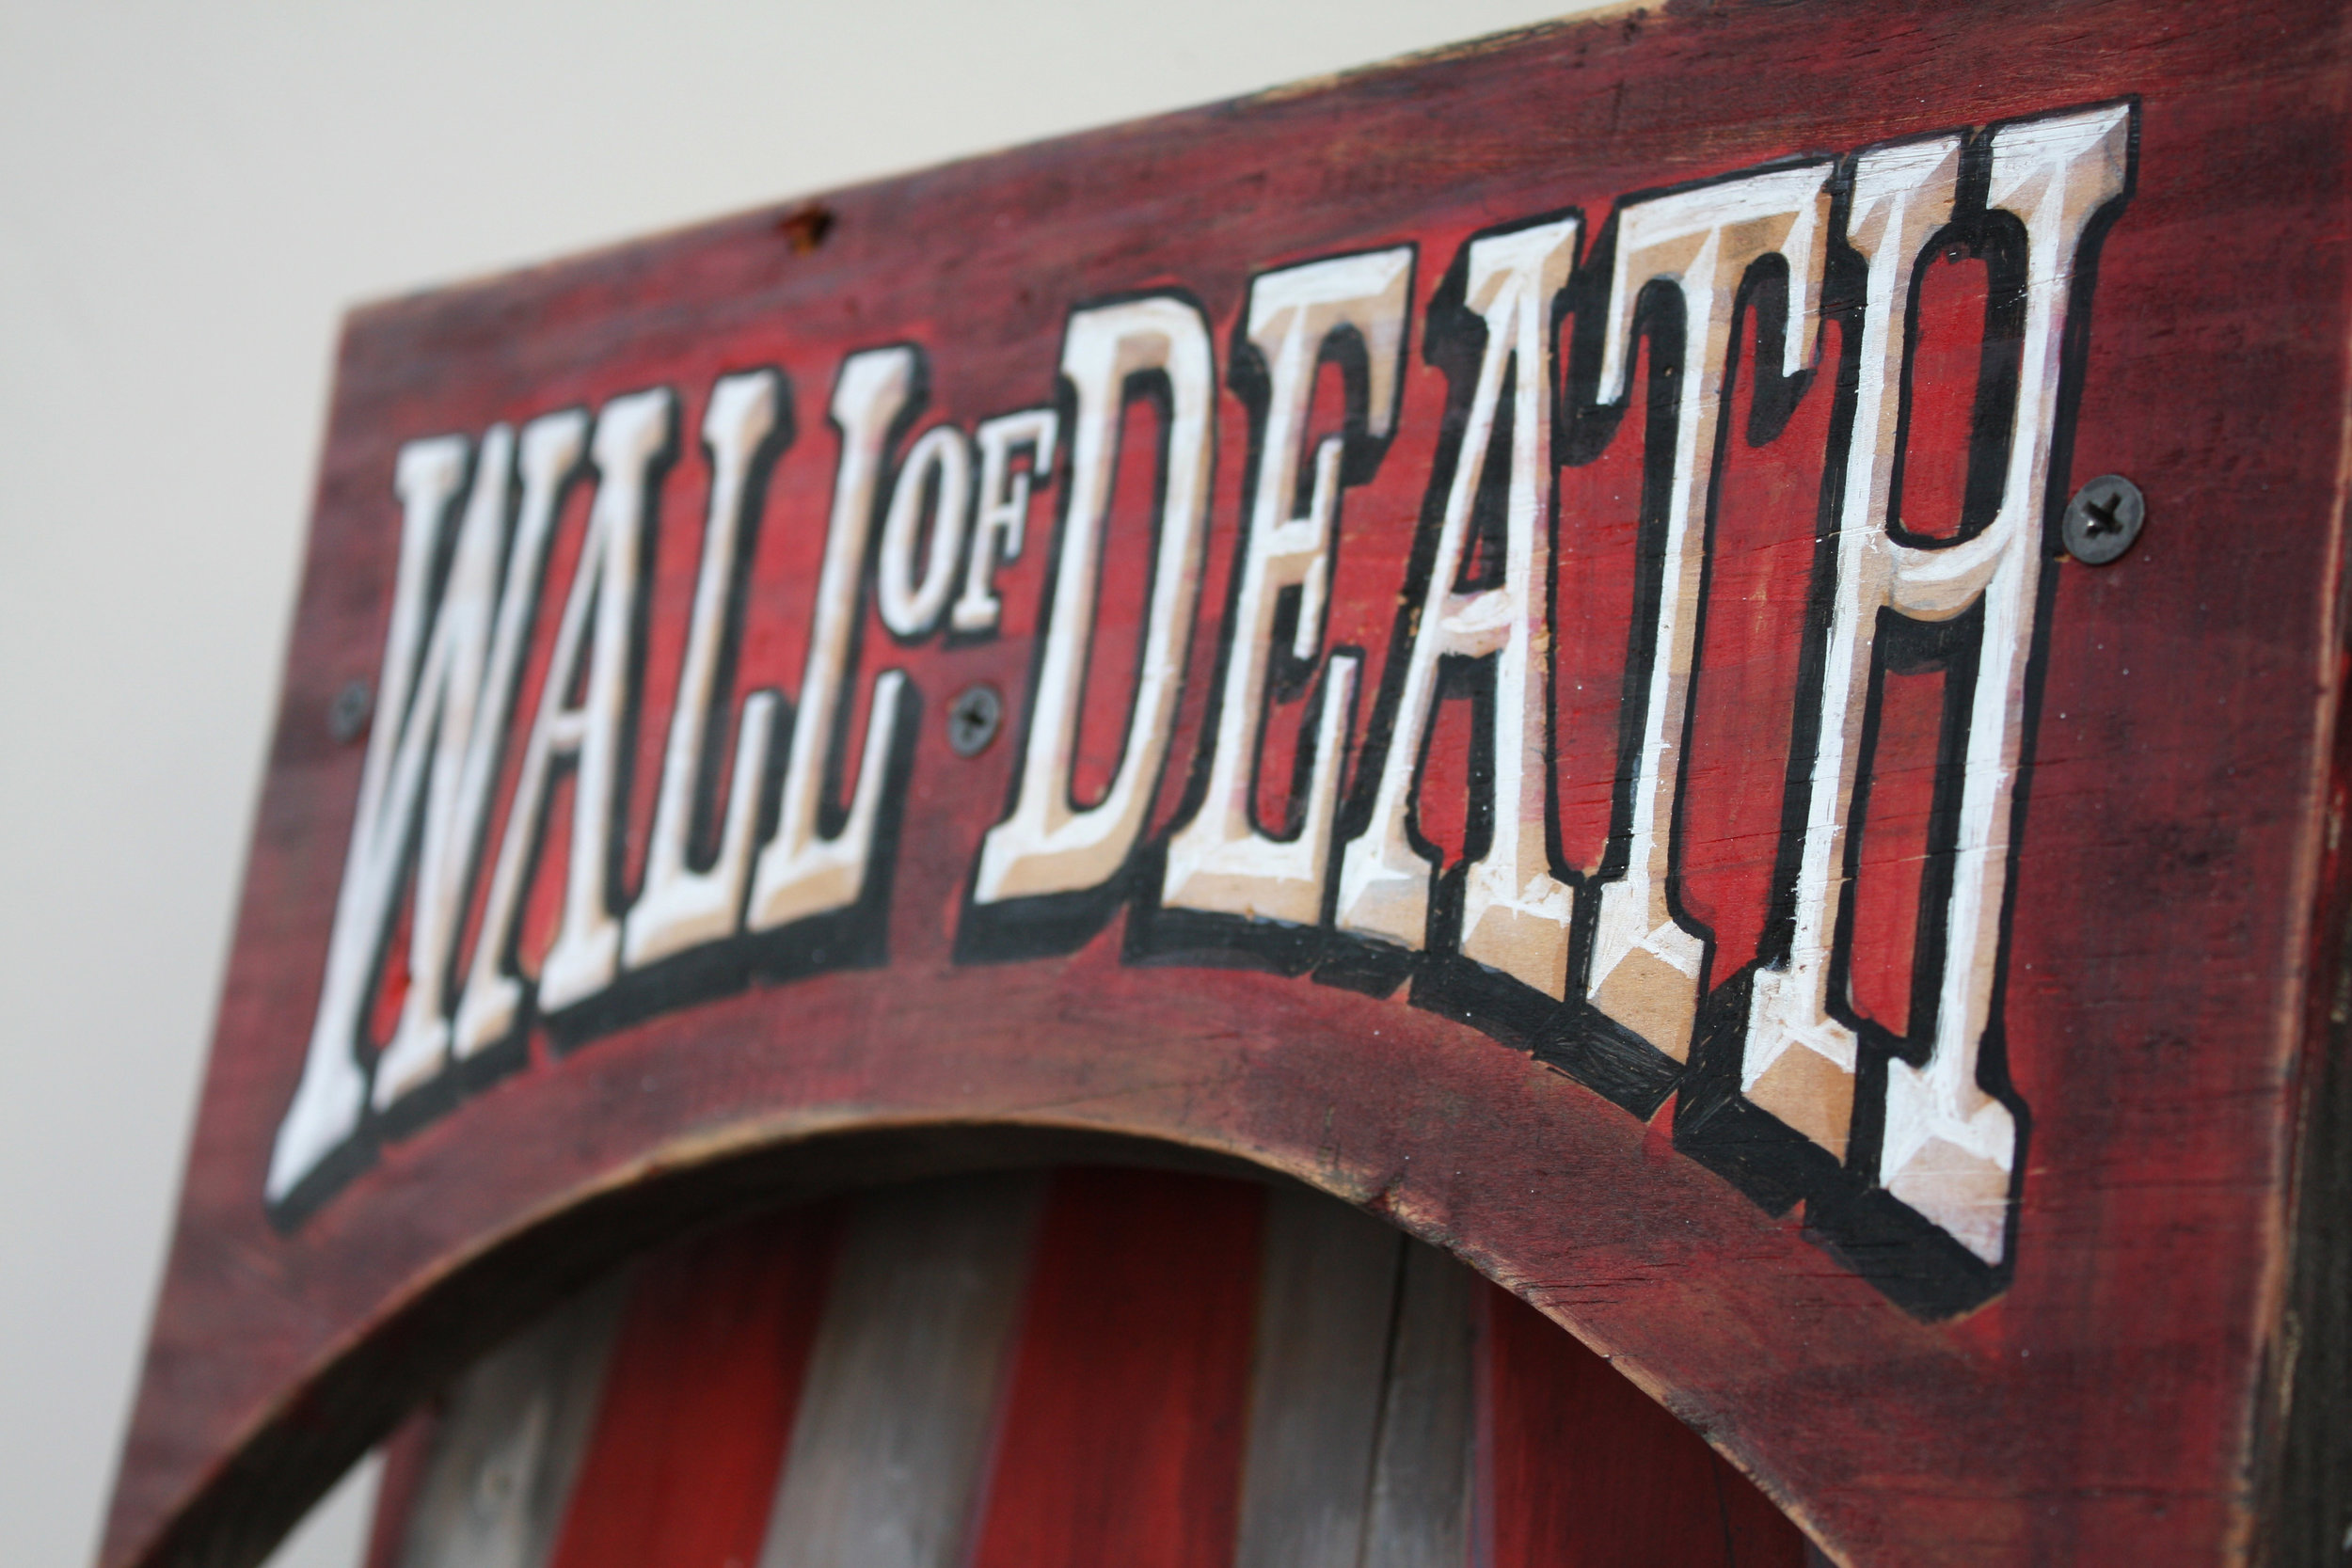 wall-of-death-rauto-detail1.jpg